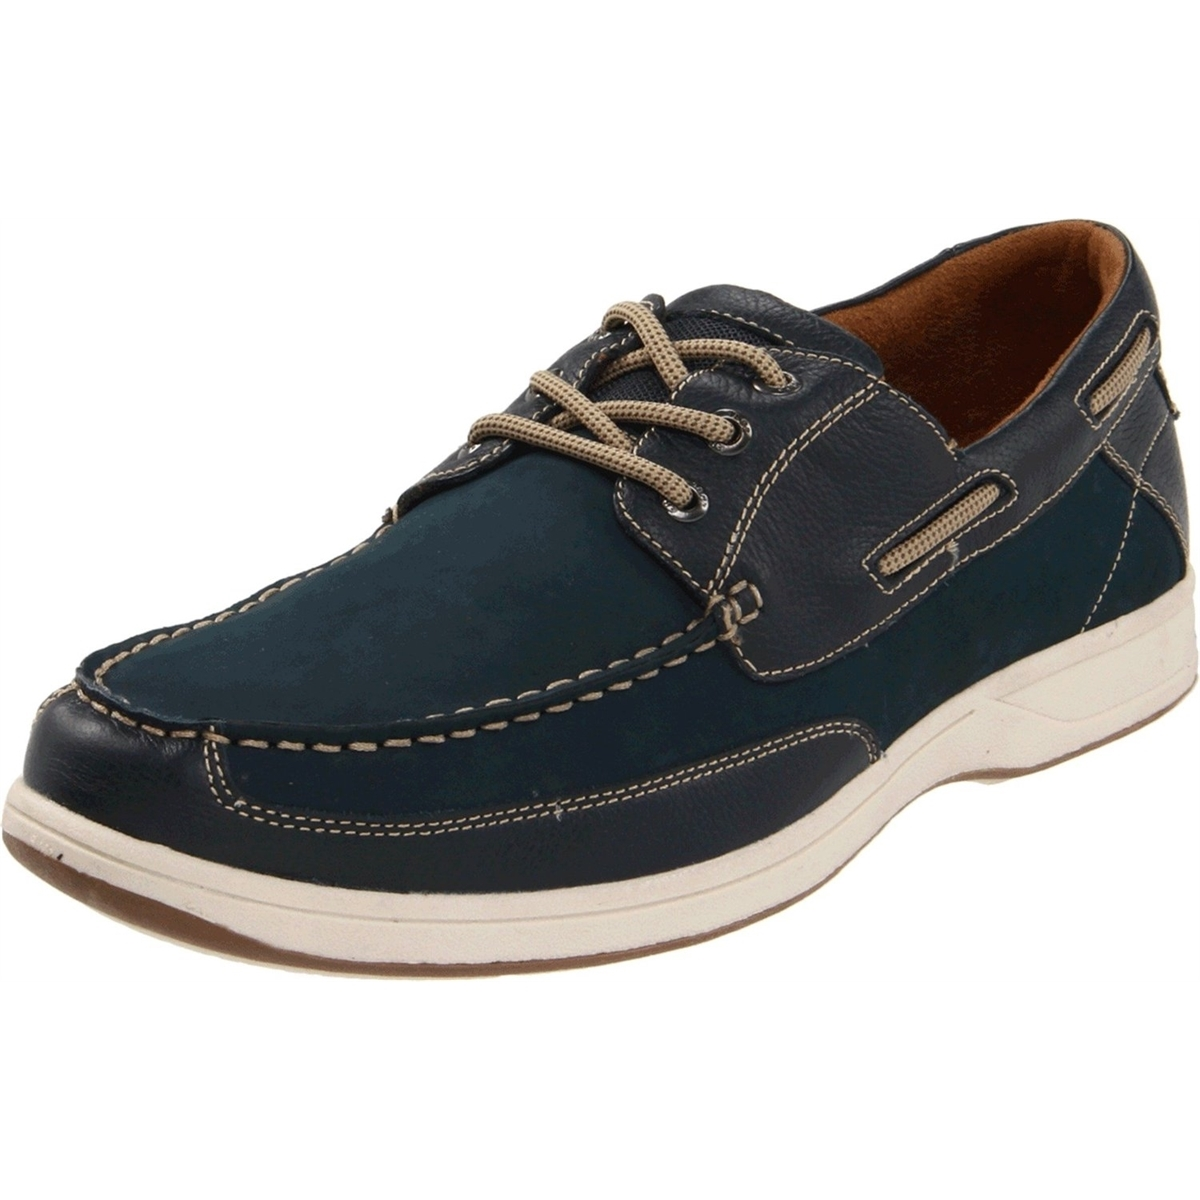 Florsheim M Lakeside Ox Boat Shoes by Florsheim